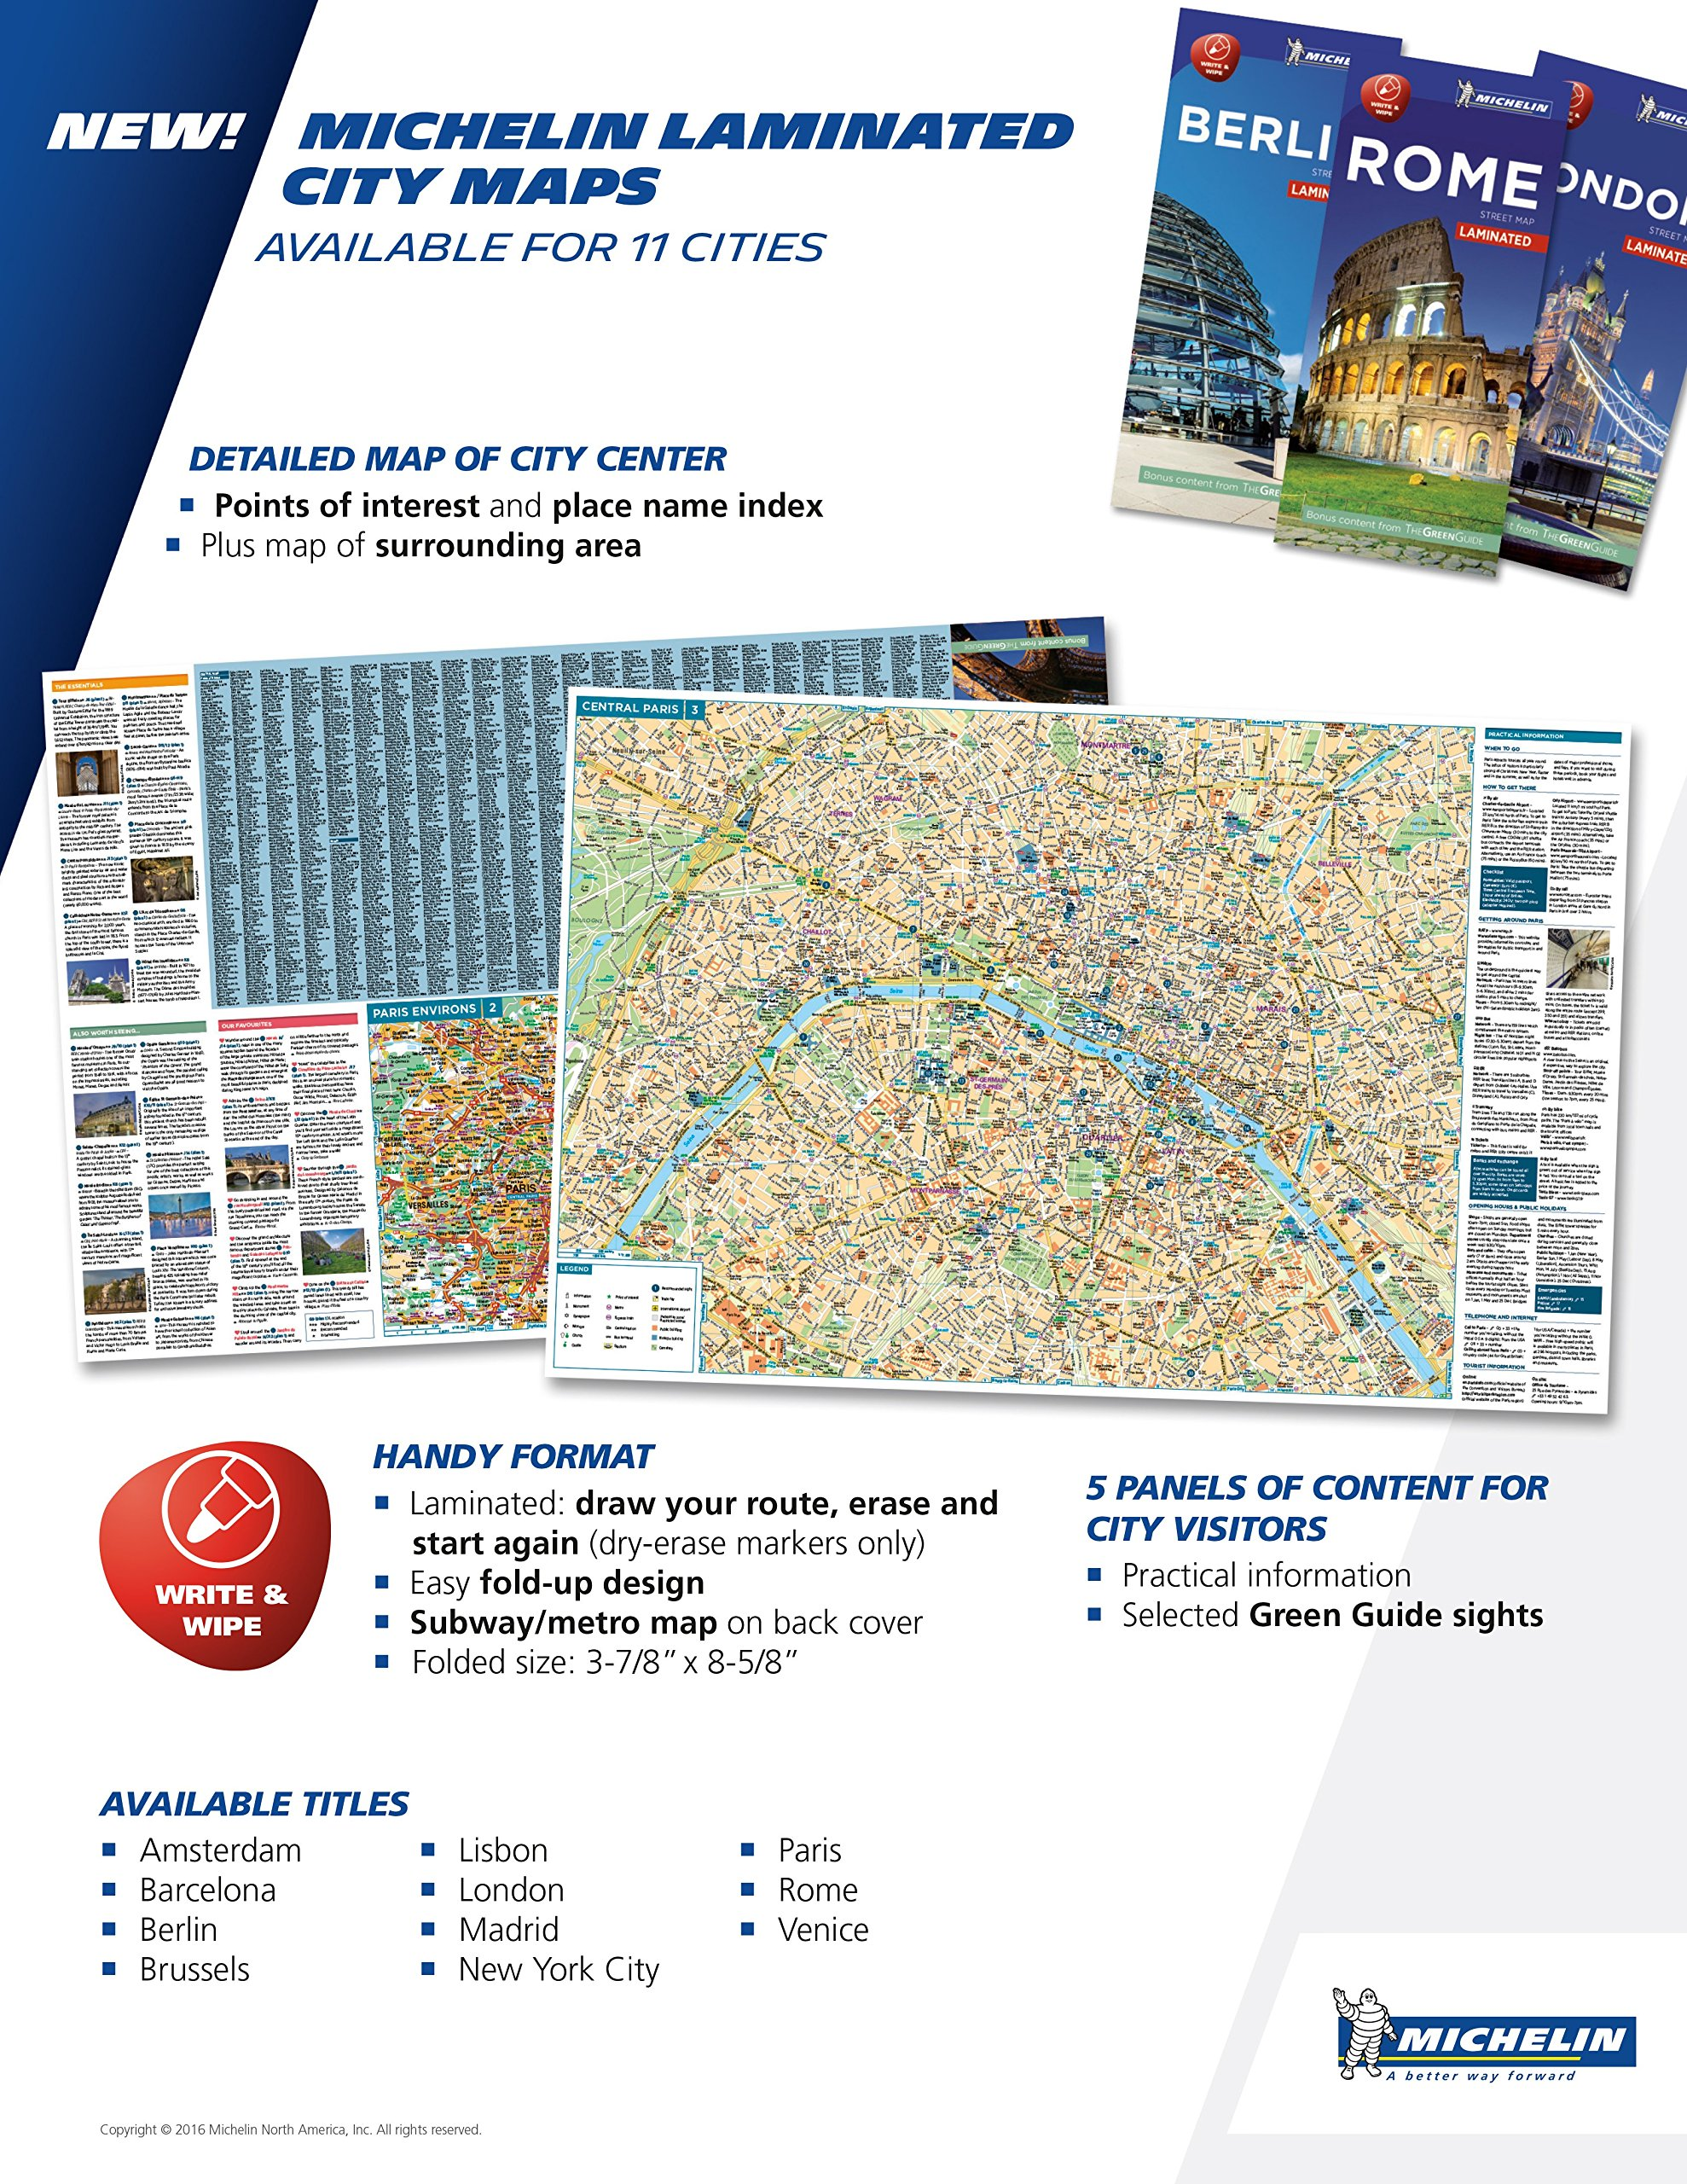 michelin paris city map laminated map michelin street map michelin 9782067214217 amazoncom books